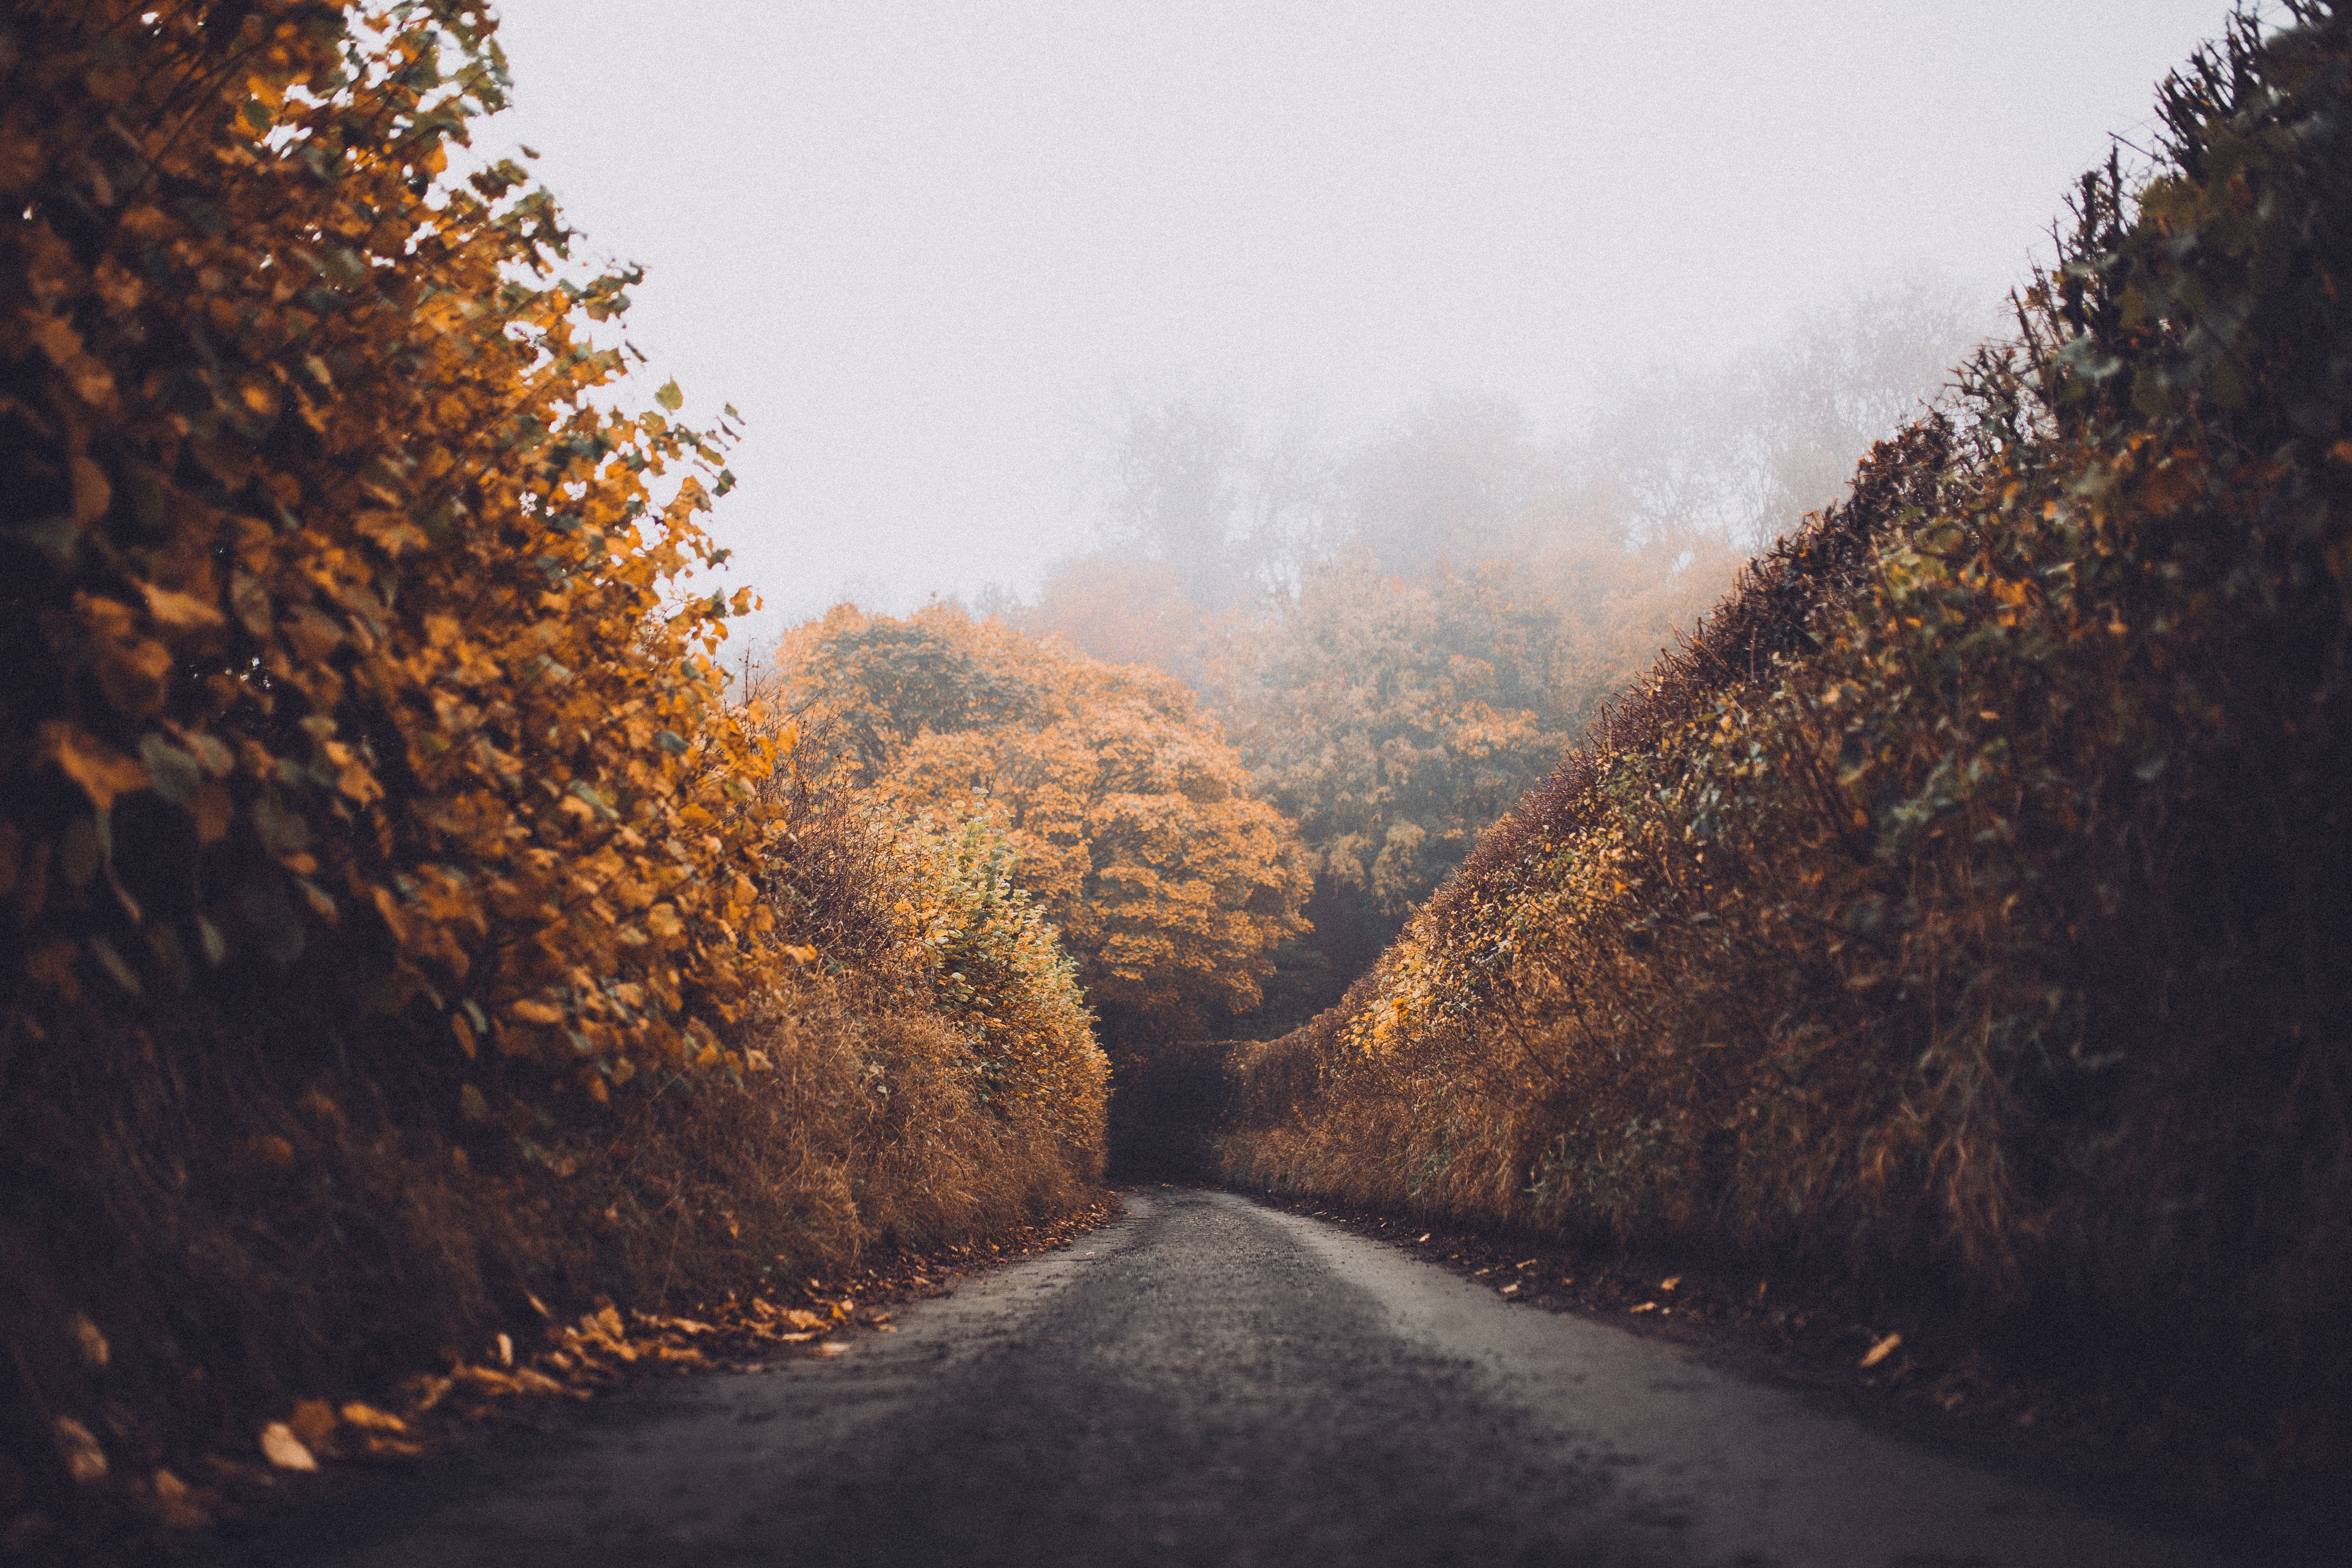 concrete road between trees with autumn leaves